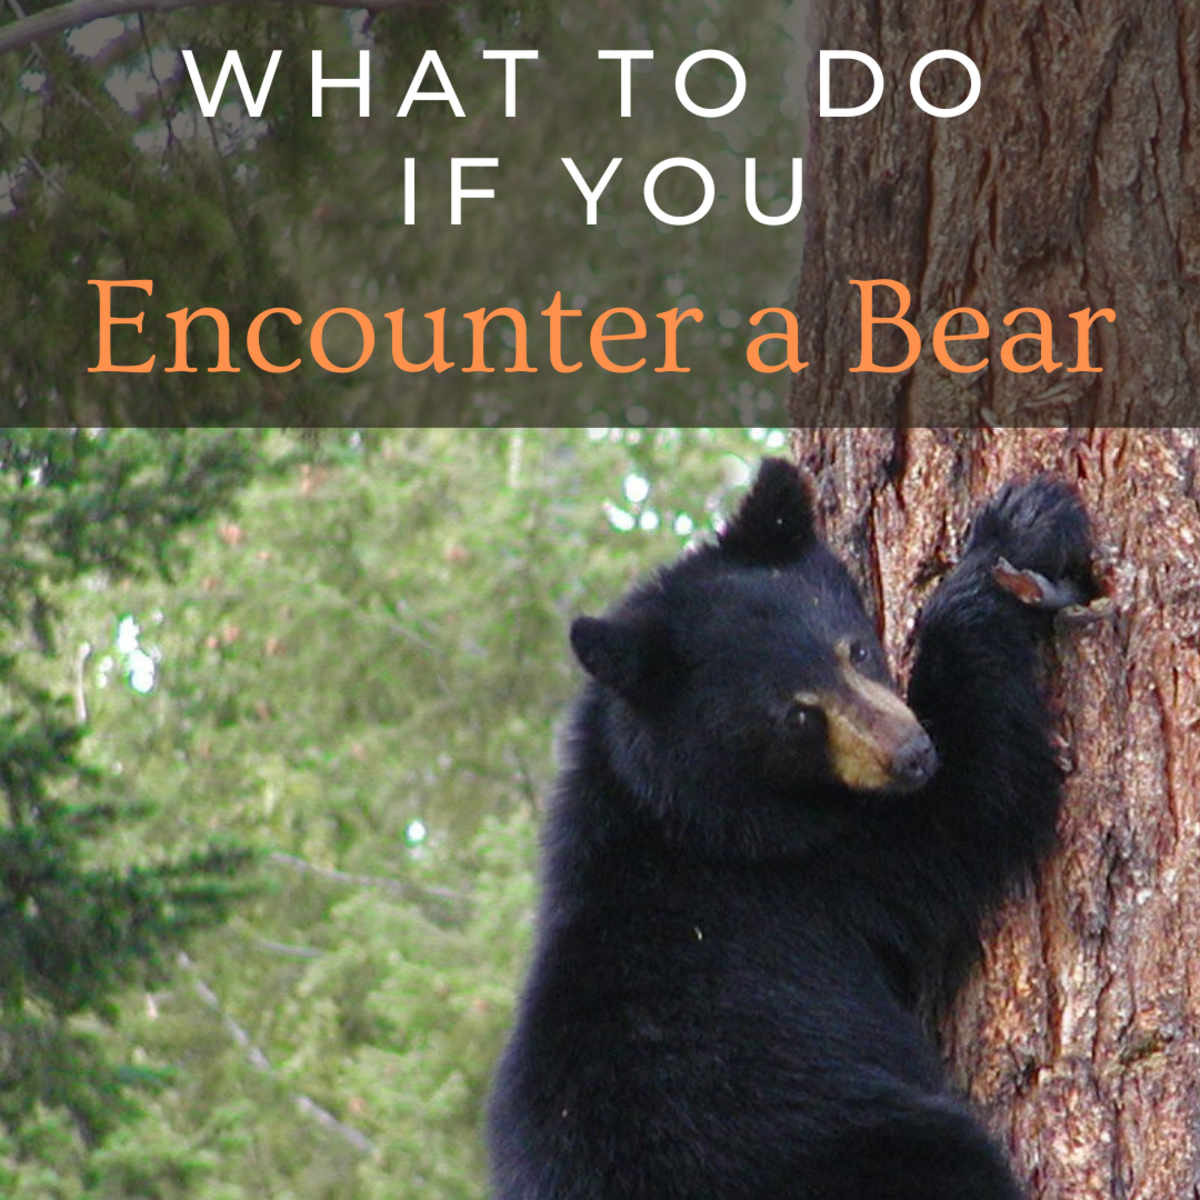 What to Do If You Encounter a Bear and How to Stay Safe